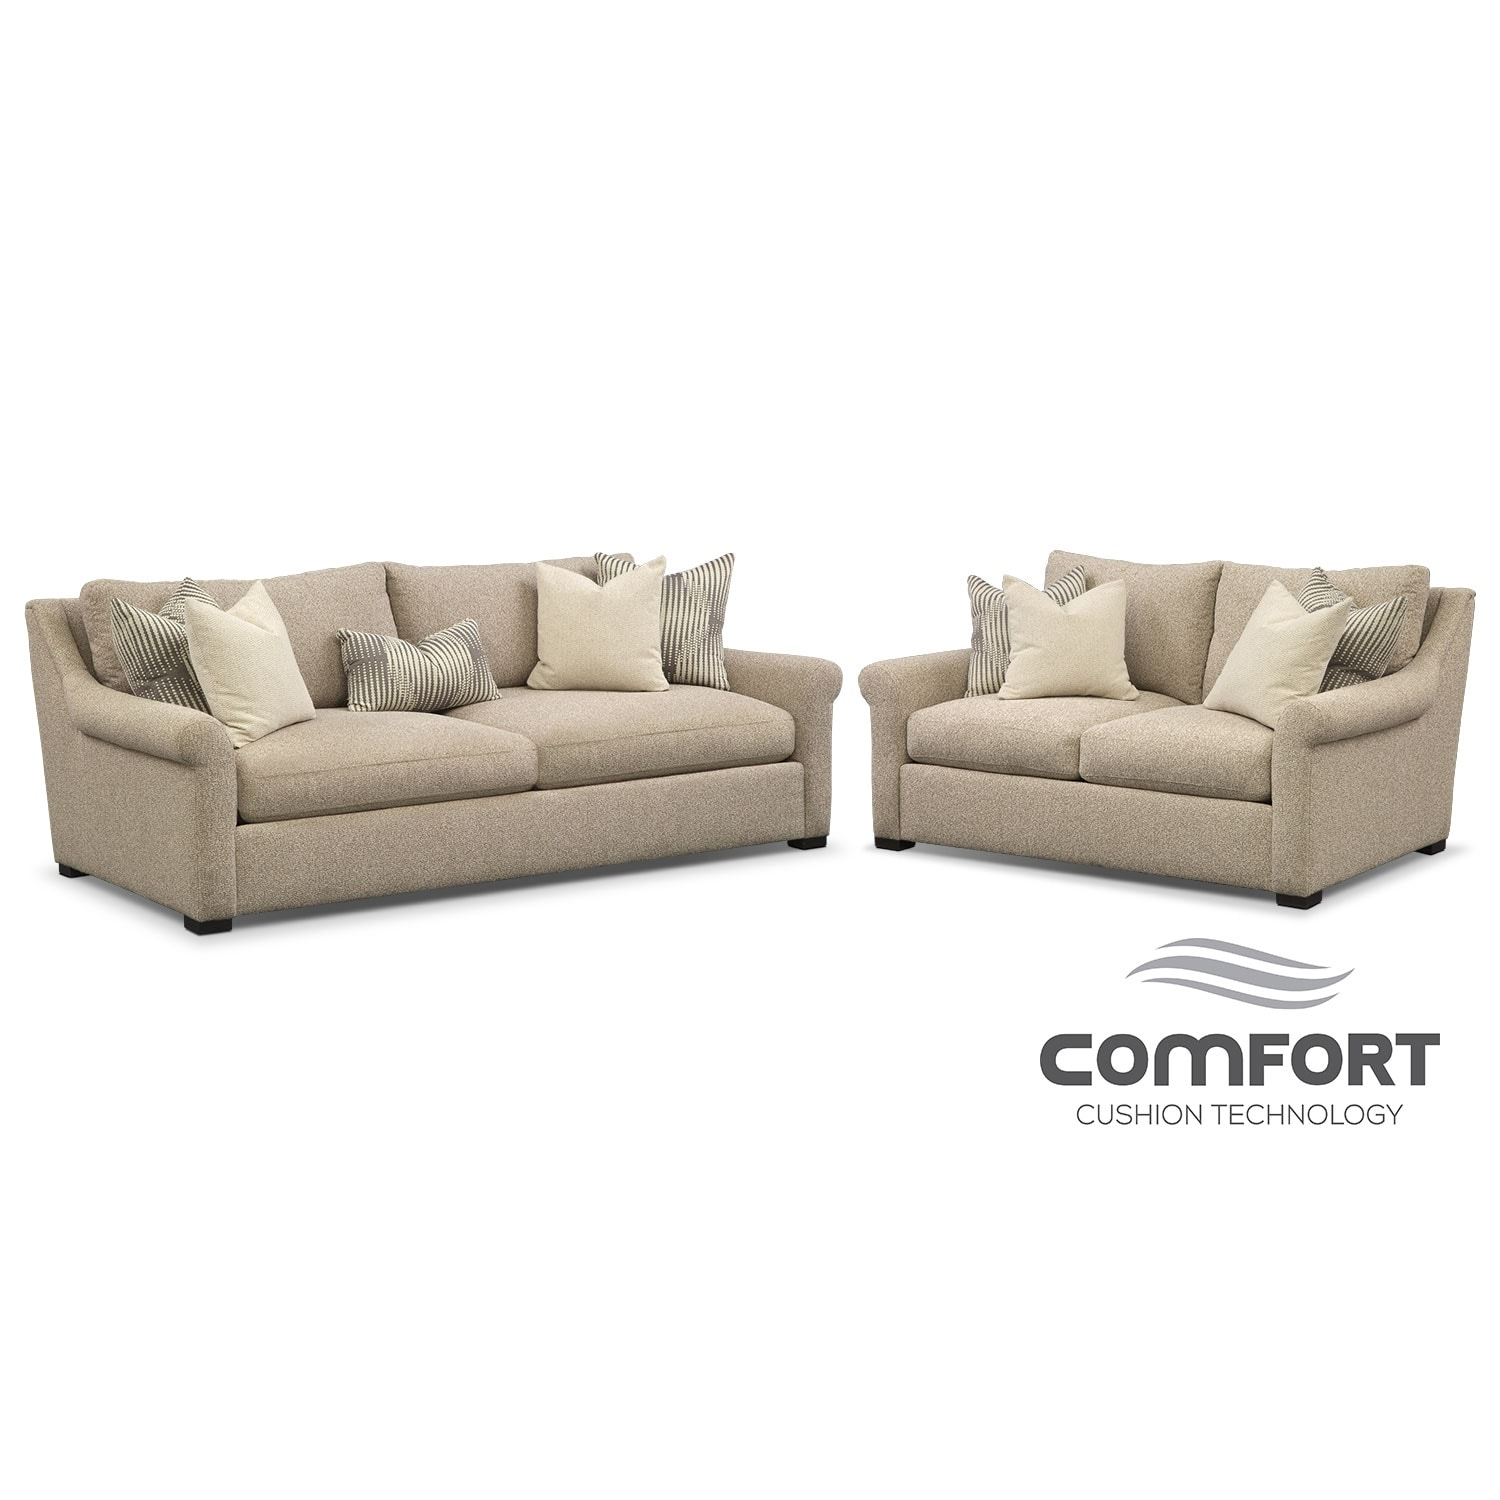 Robertson Comfort Sofa and Loveseat Set - Beige